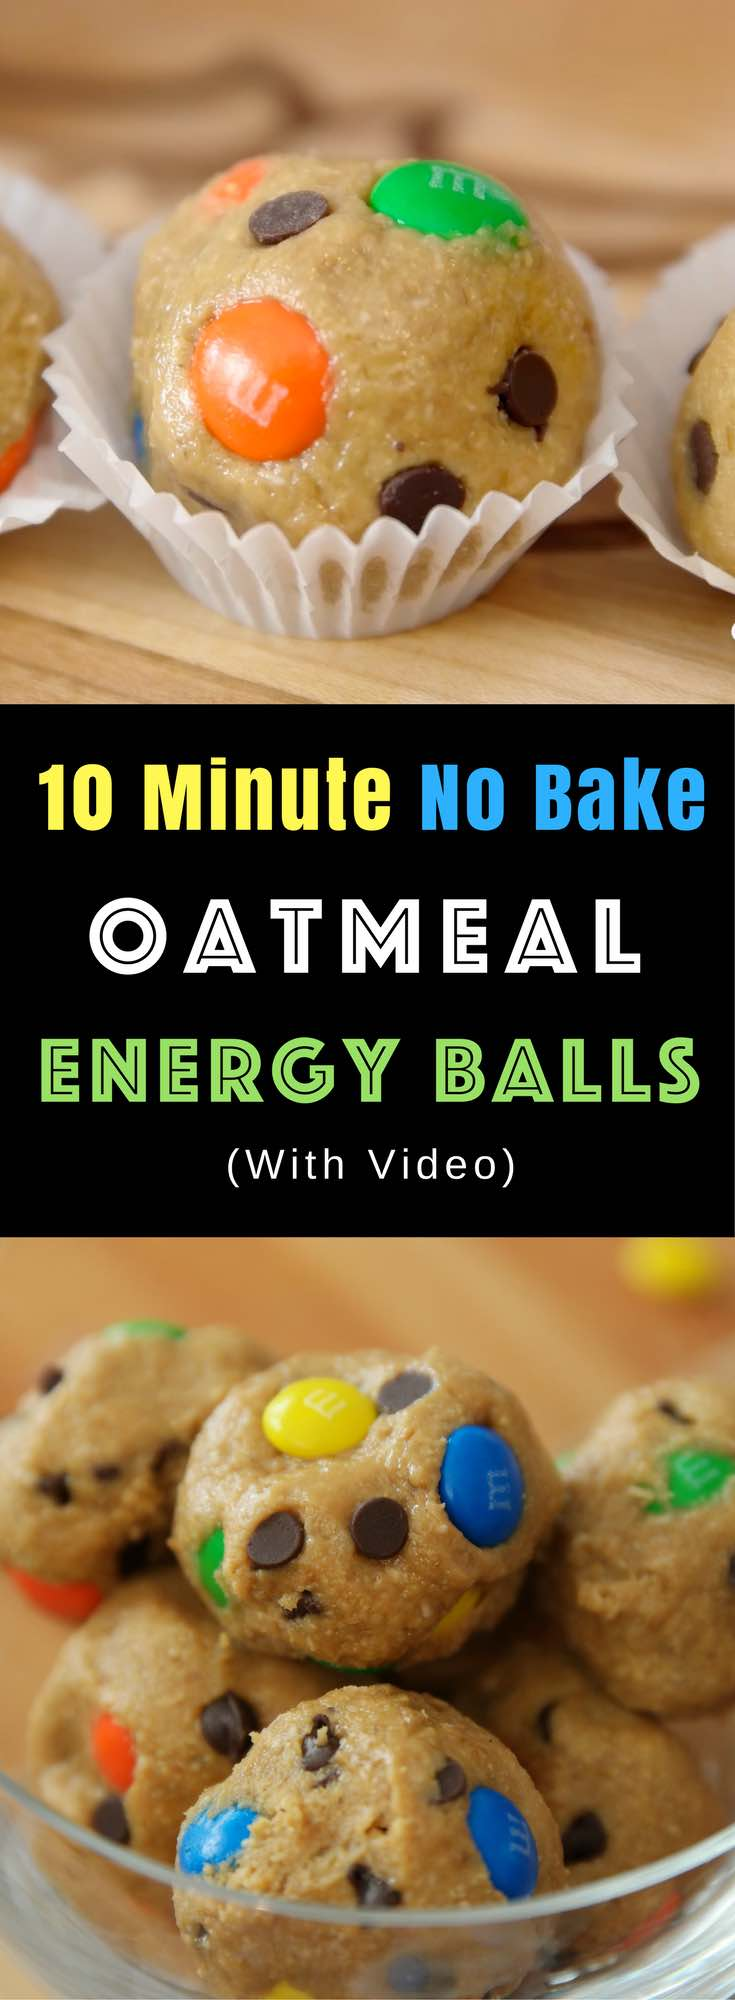 No-Bake Monster Oatmeal Energy Balls – chewy, crunchy and sweet bite-sized cookie balls that's so easy to make. One of the easiest snack recipe that takes only 10 minutes to make. No eggs or flour is required. All you need is just a few ingredients: rolled oats, peanuts, flaxseed meal, peanut butter, coconut oil, maple syrup, vanilla extract, chocolate chips and M&Ms